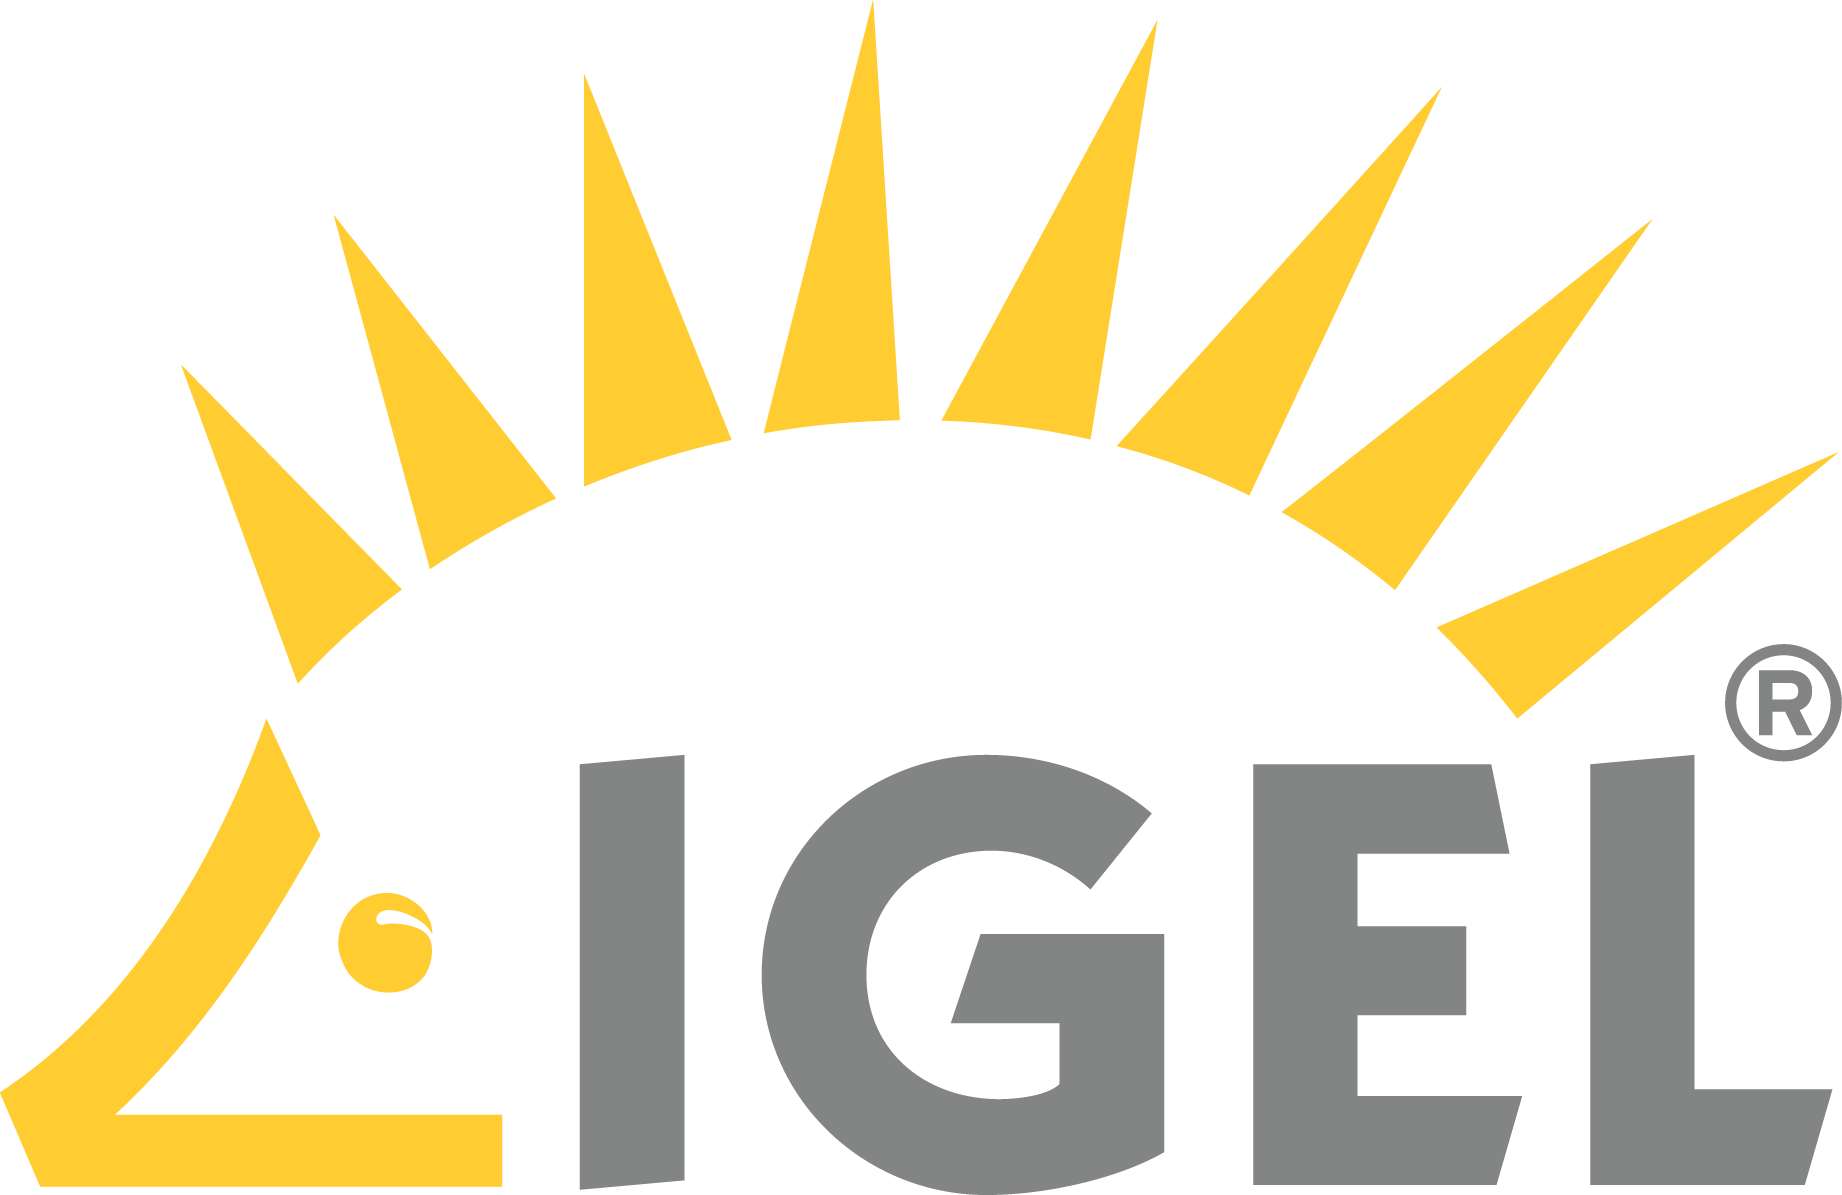 IGel official logo